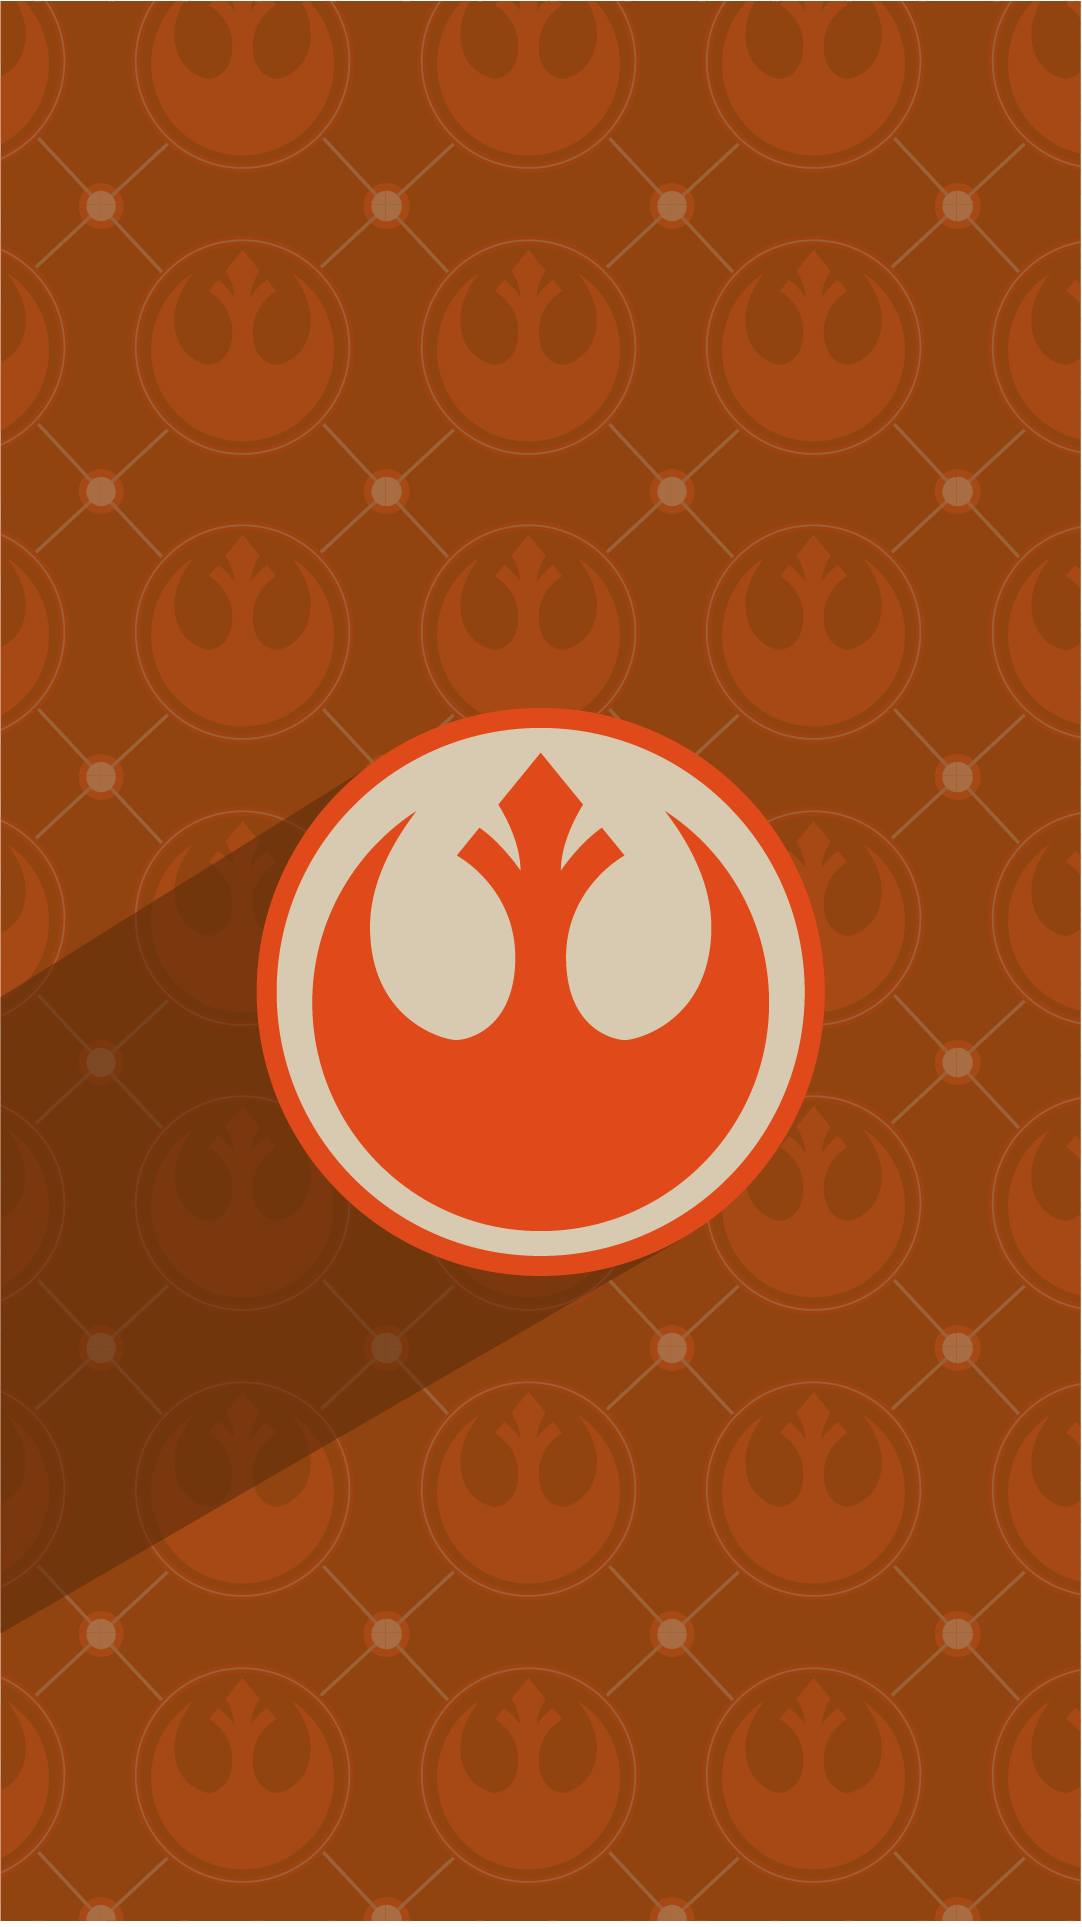 Star Wars Rebel Phone Wallpapers Wallpaper Cave